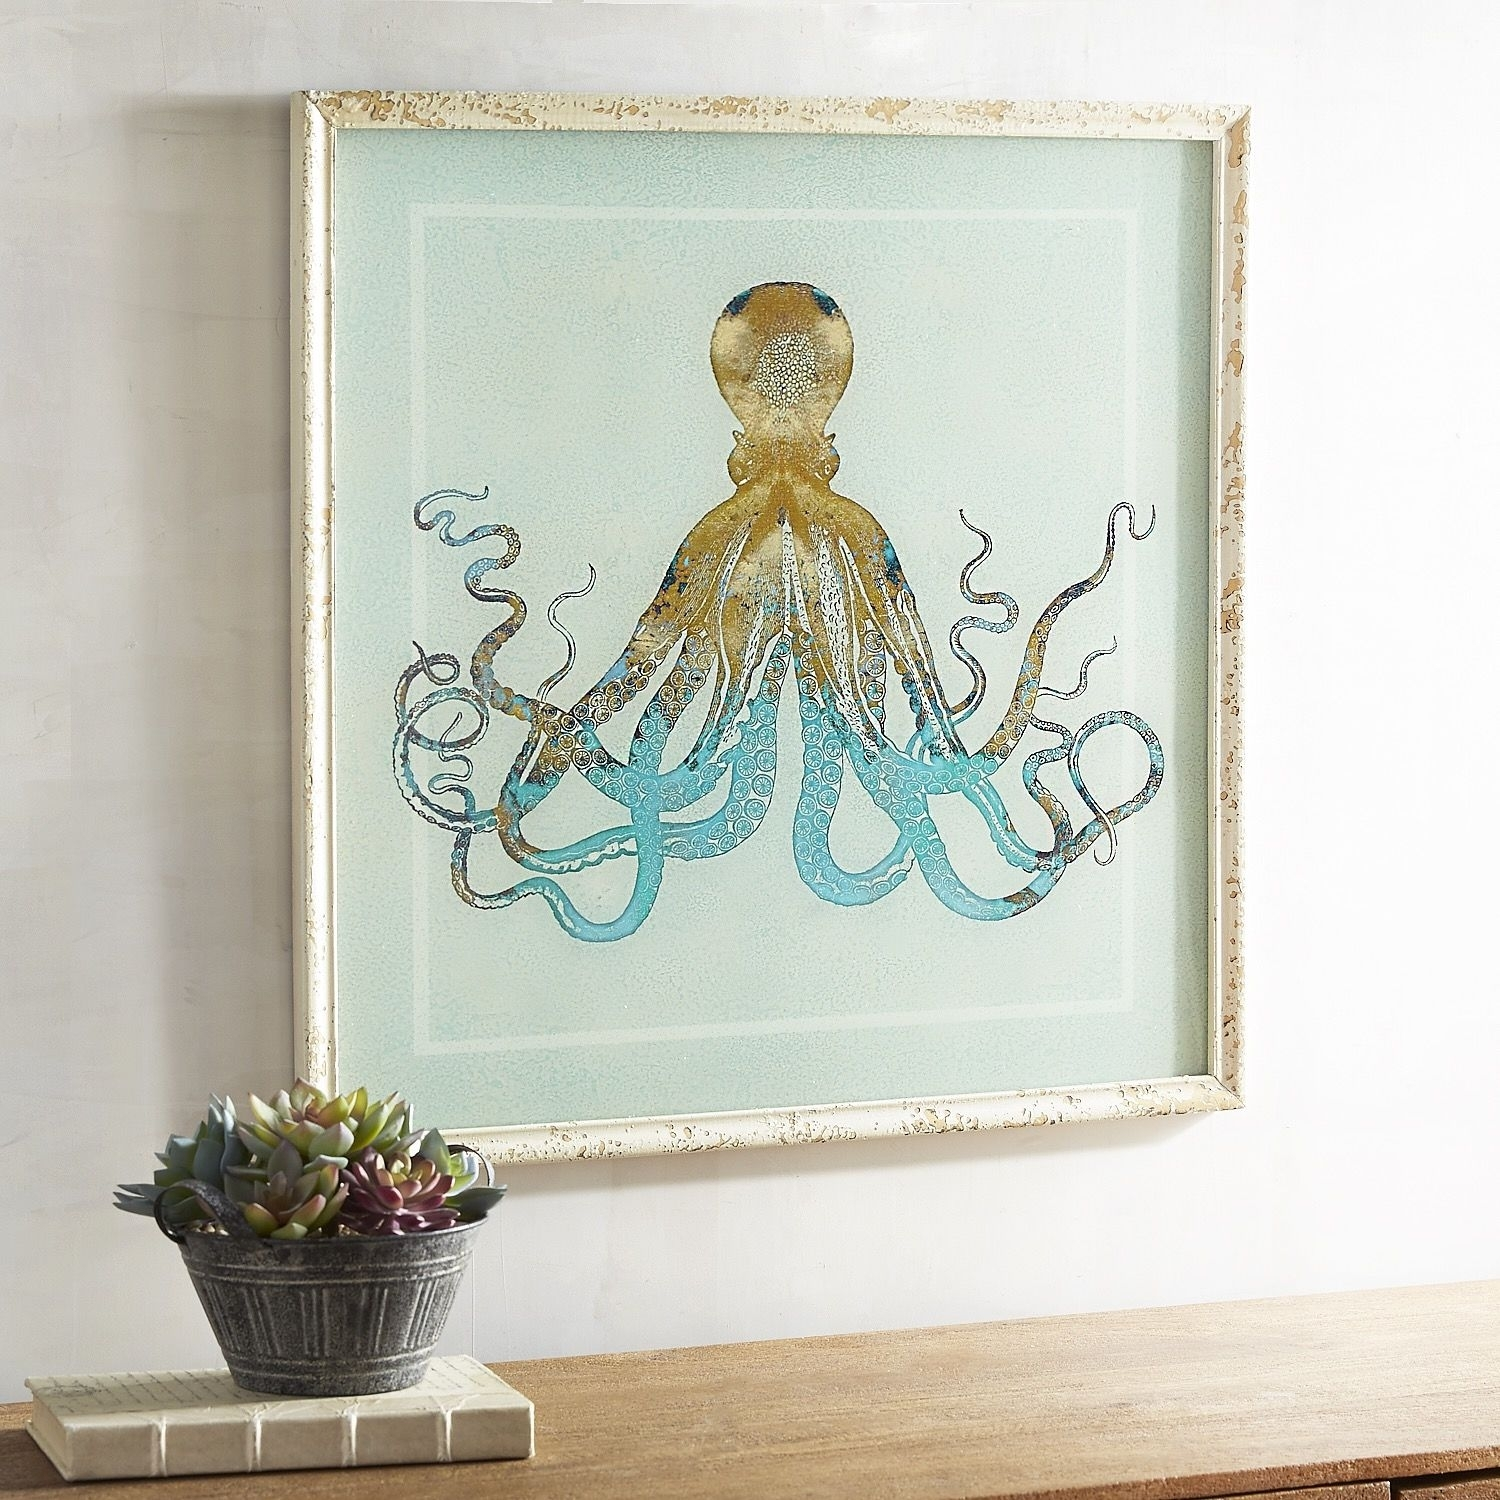 Octopus Wall Art Pier 1 Imports, Pier 1 Wall Art – Swinki Morskie With Latest Pier 1 Wall Art (Gallery 9 of 20)